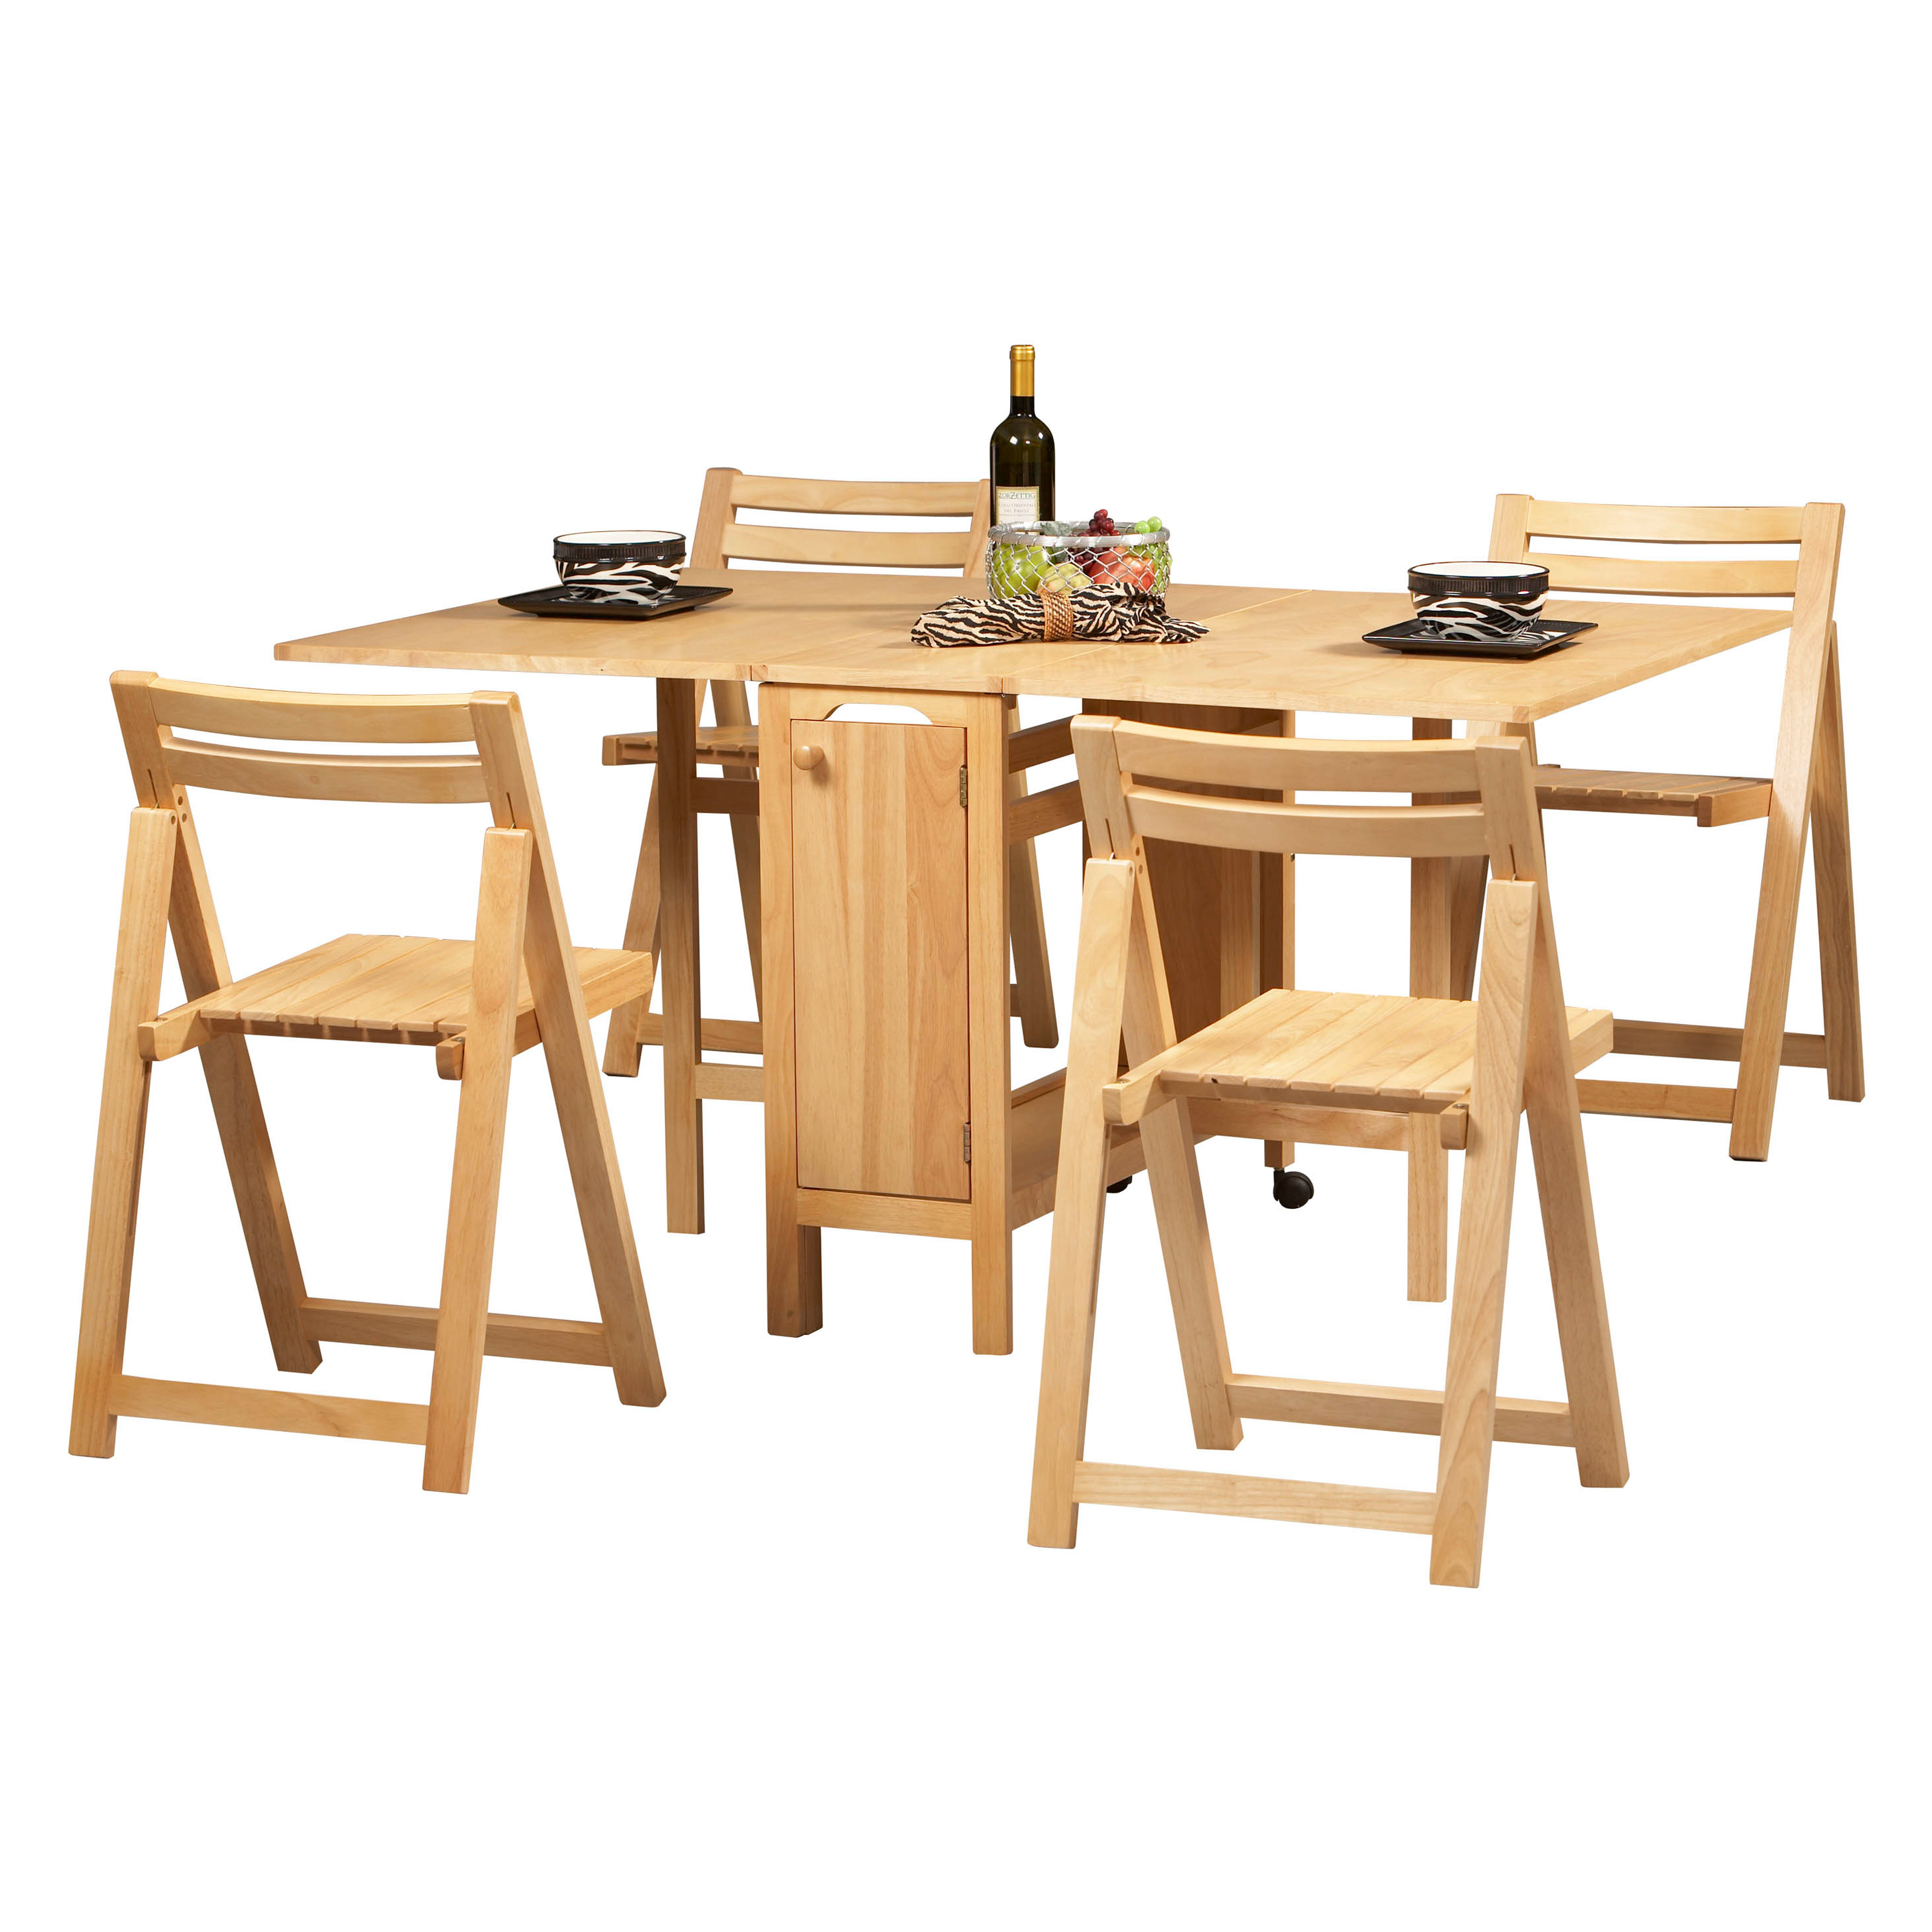 Linon space saver 5 pc folding table and chair set at for Table and chair set